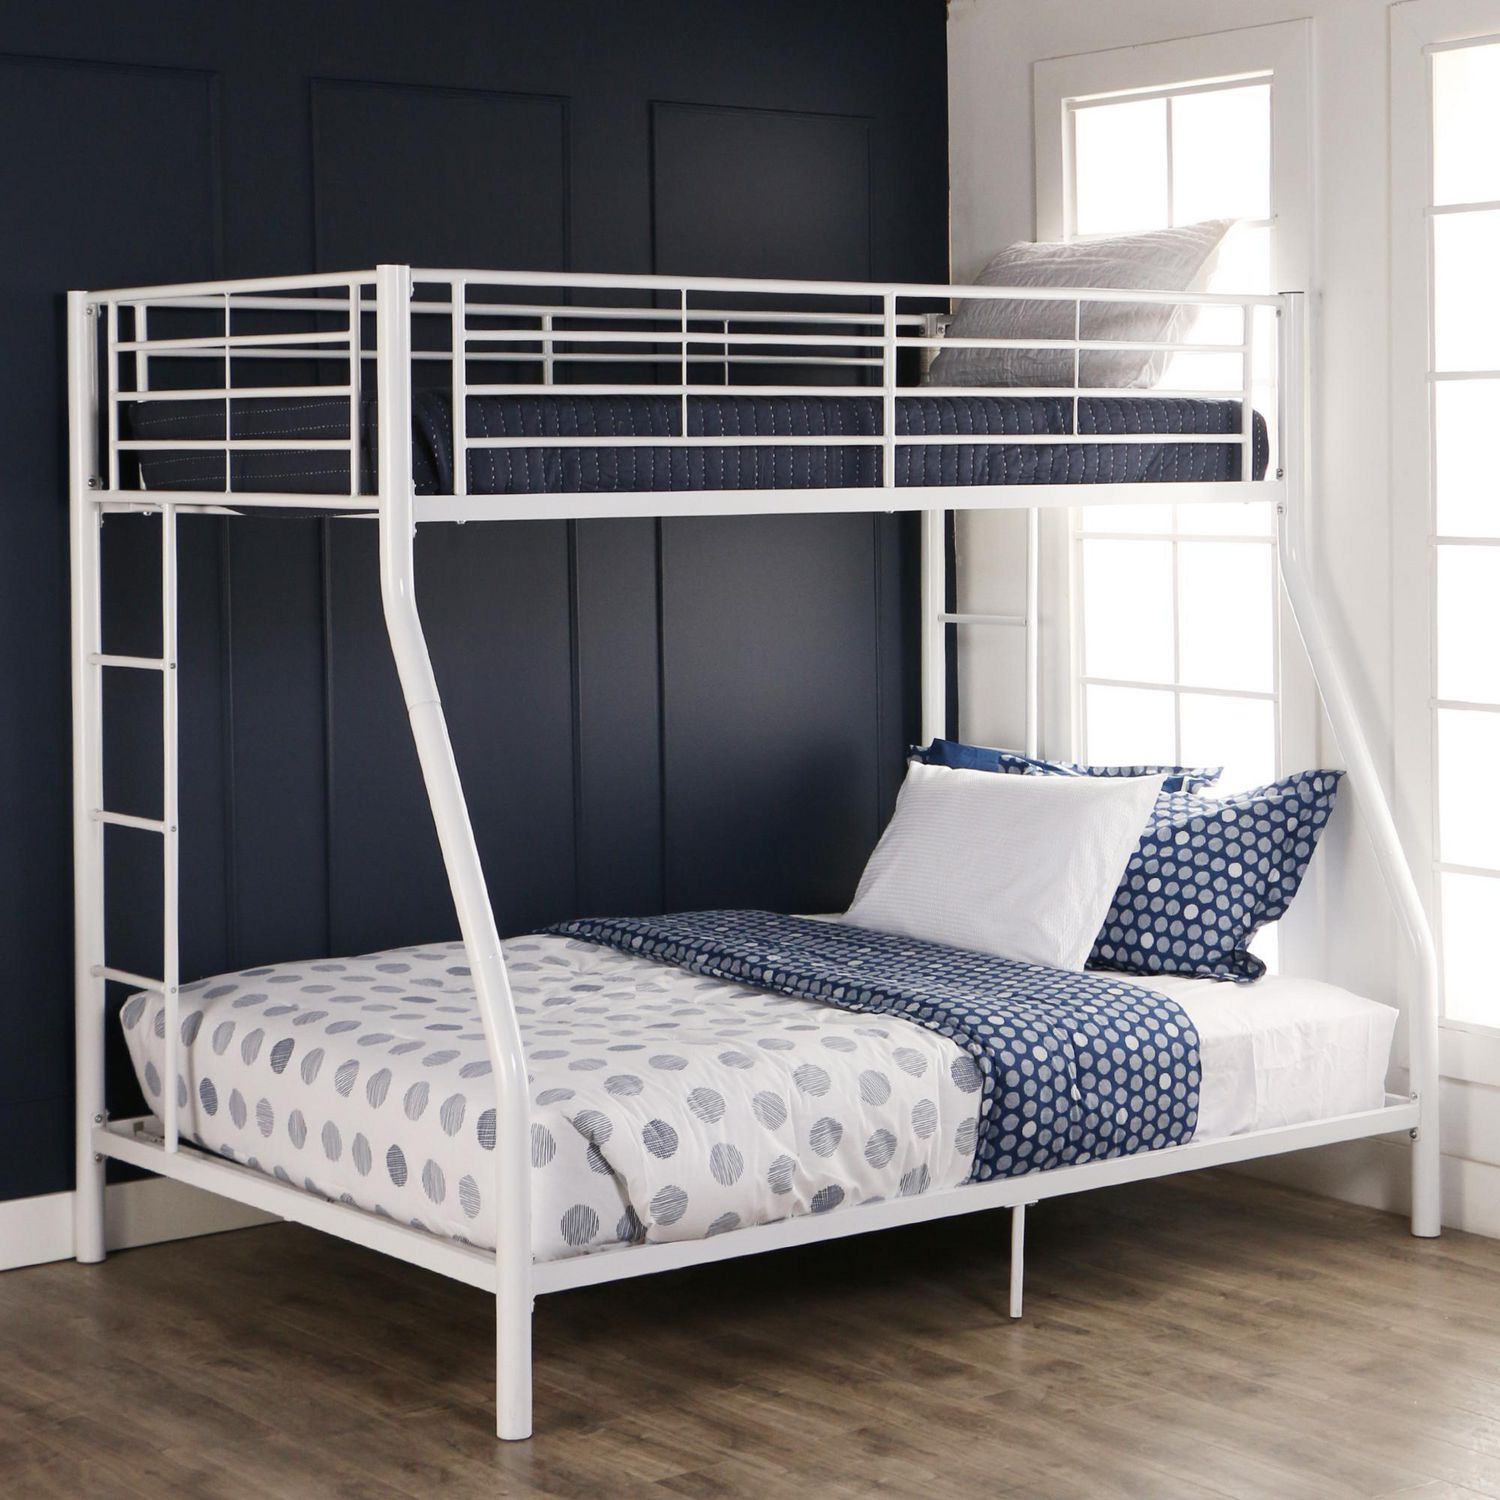 Twin Over Double Bunk Bed White Walmart Canada